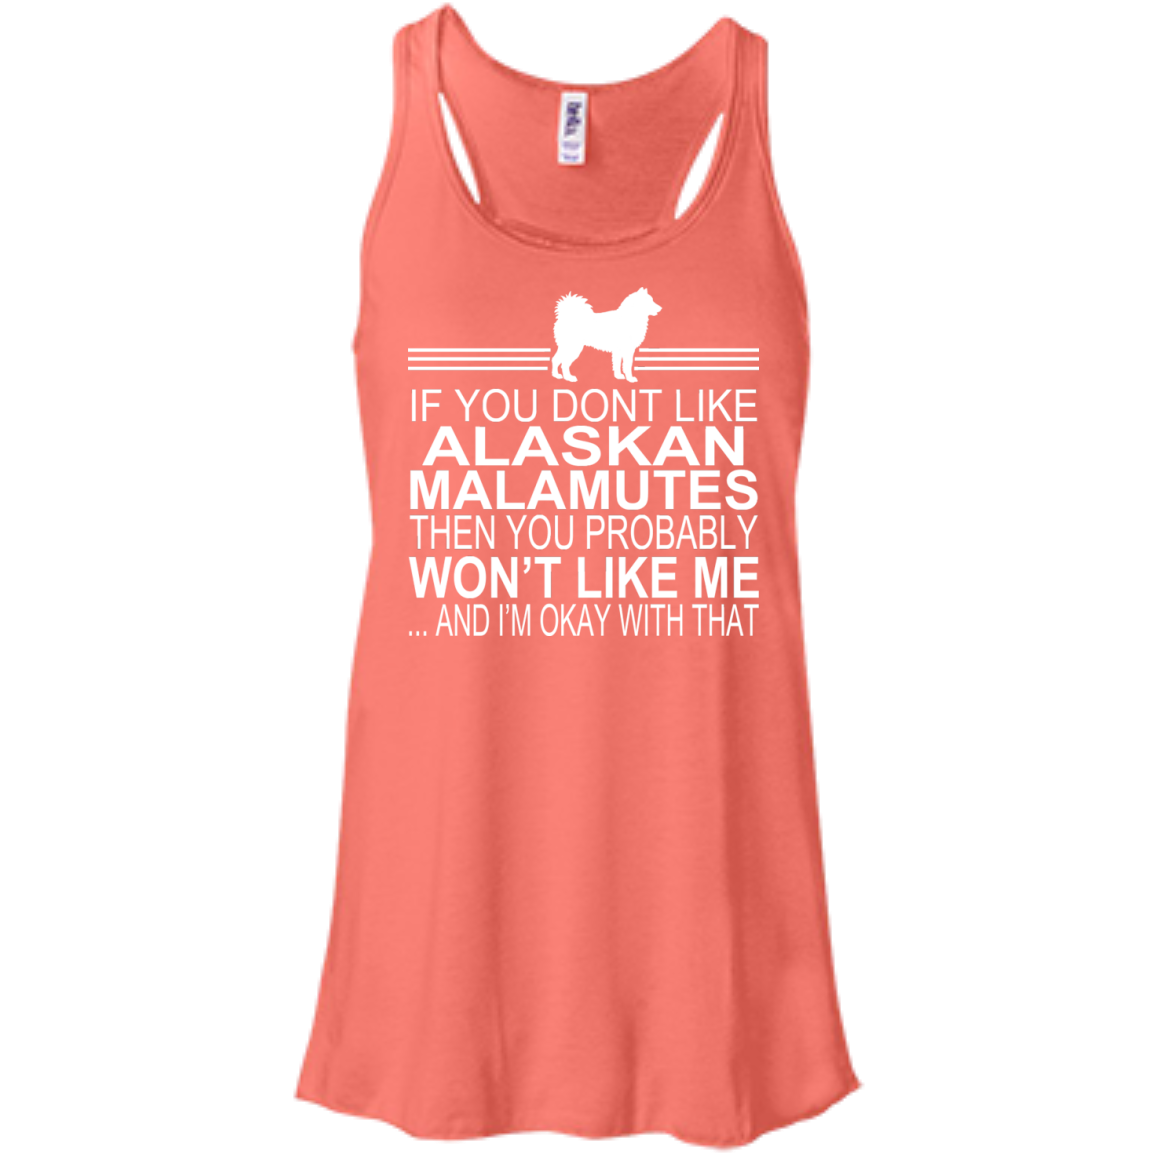 If You Dont Like Alaskan Malamutes Then You Probably Wont Like Me And Im Okay With That Flowy Racerback Tanks